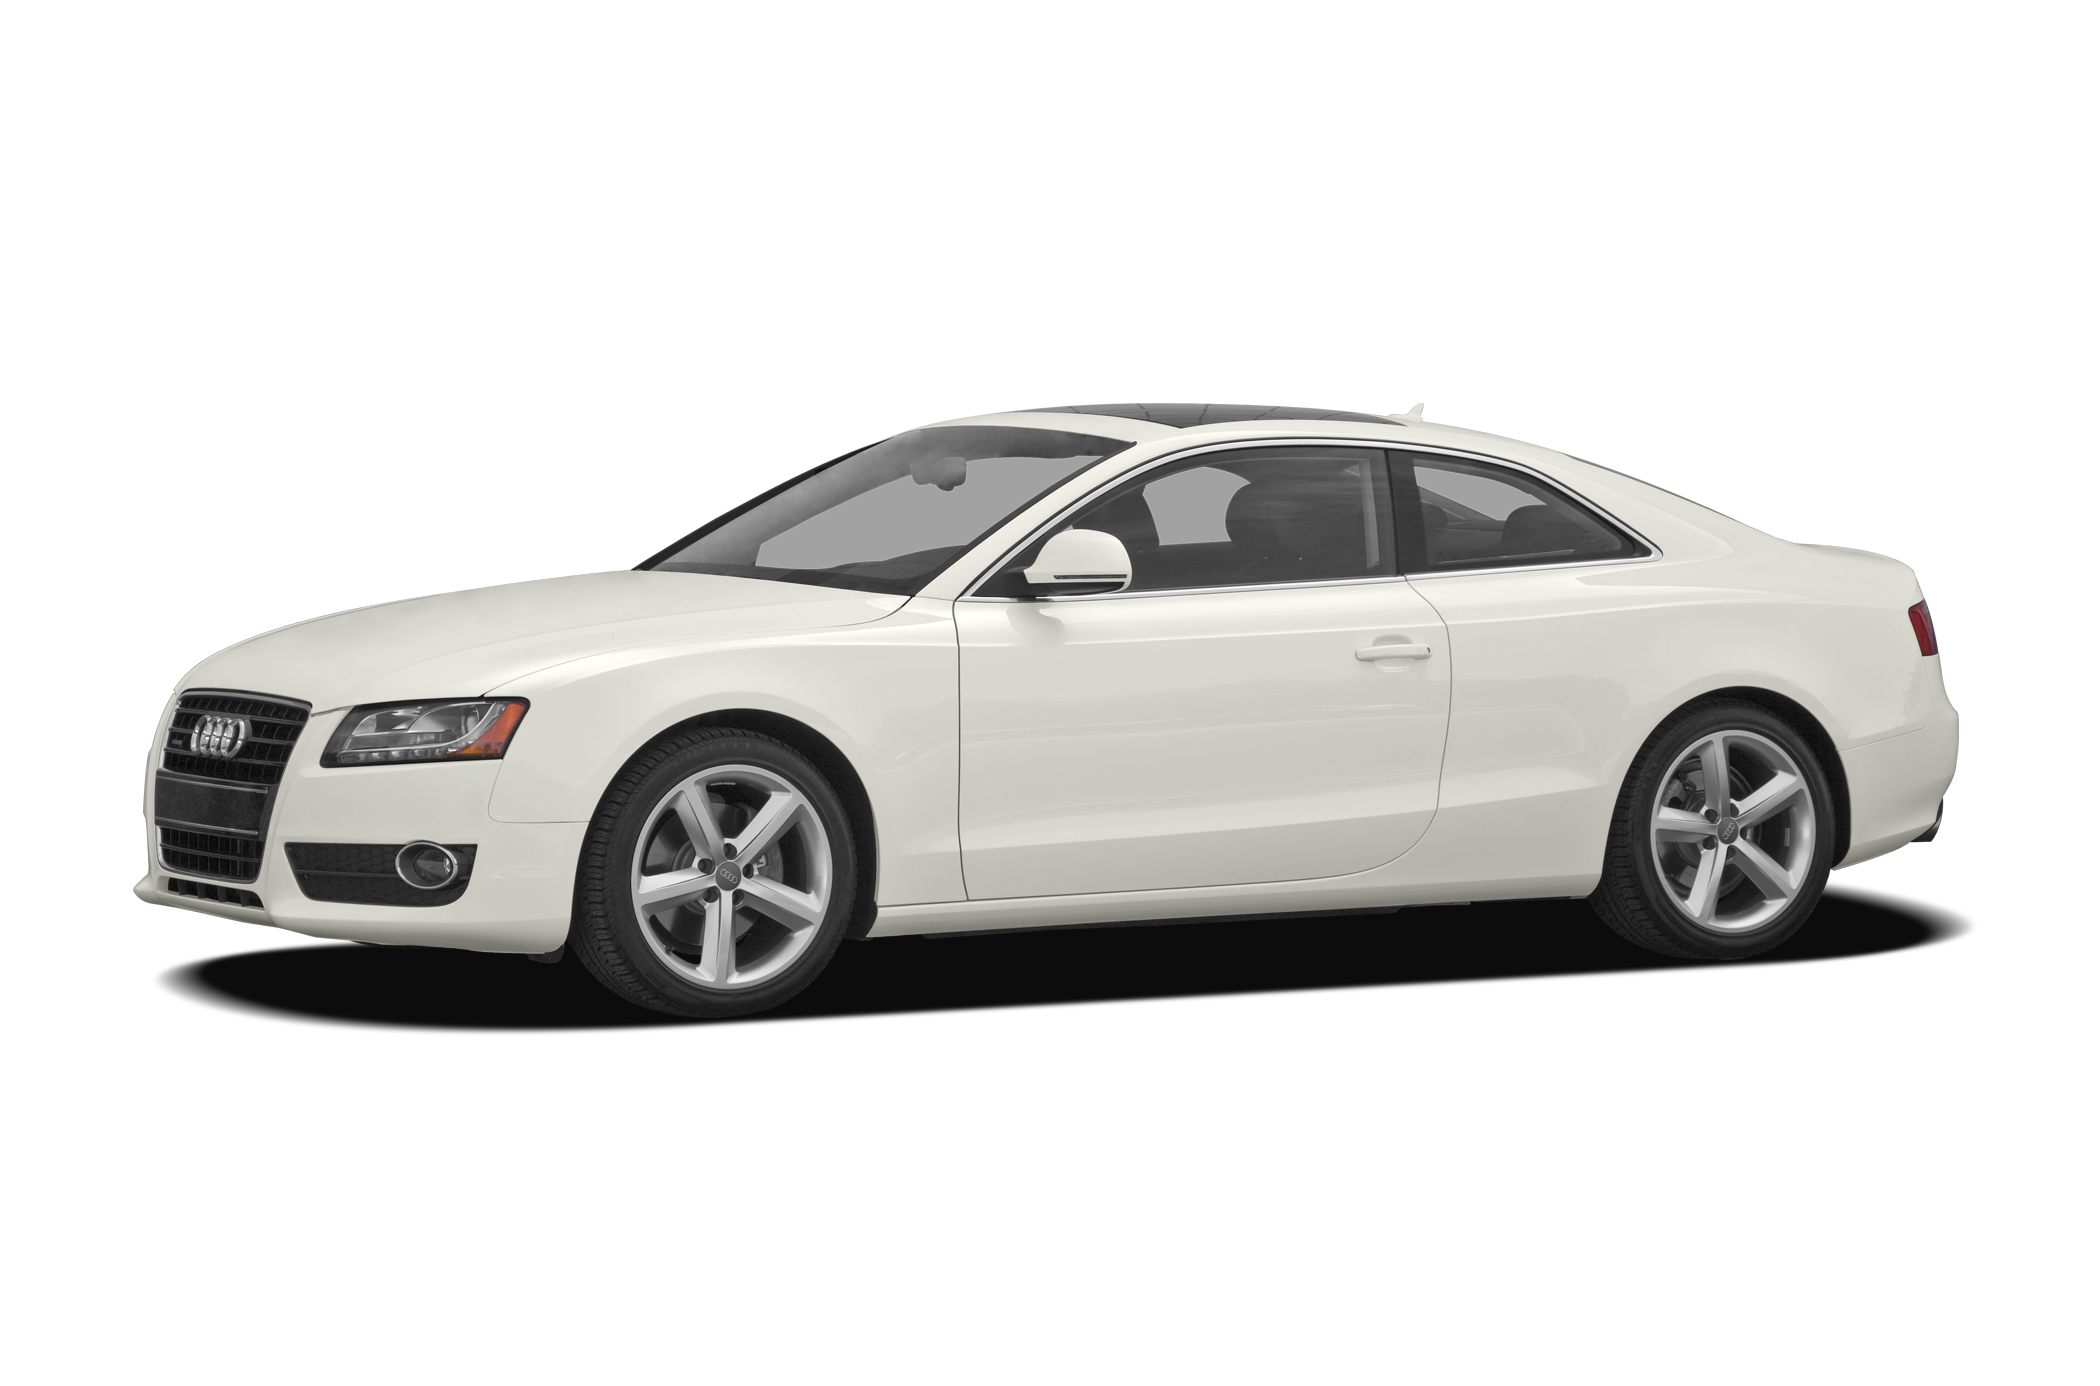 2008 Audi A5 3.2 Quattro Coupe for sale in Harvey for $17,900 with 110,531 miles.